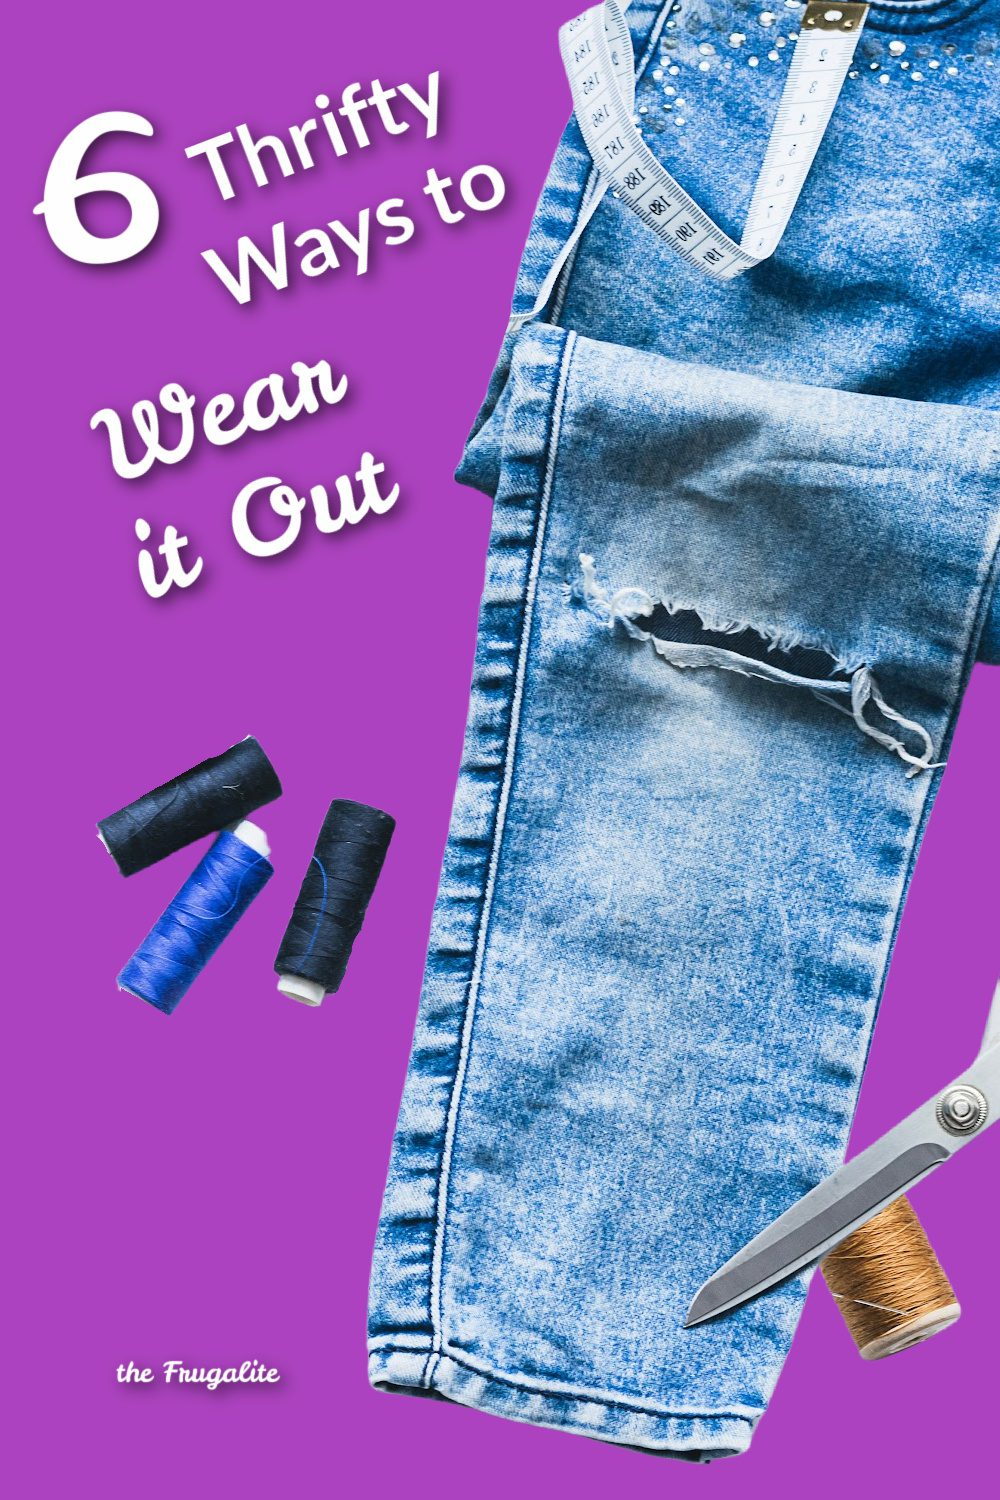 6 Thrifty Ways to Wear It Out